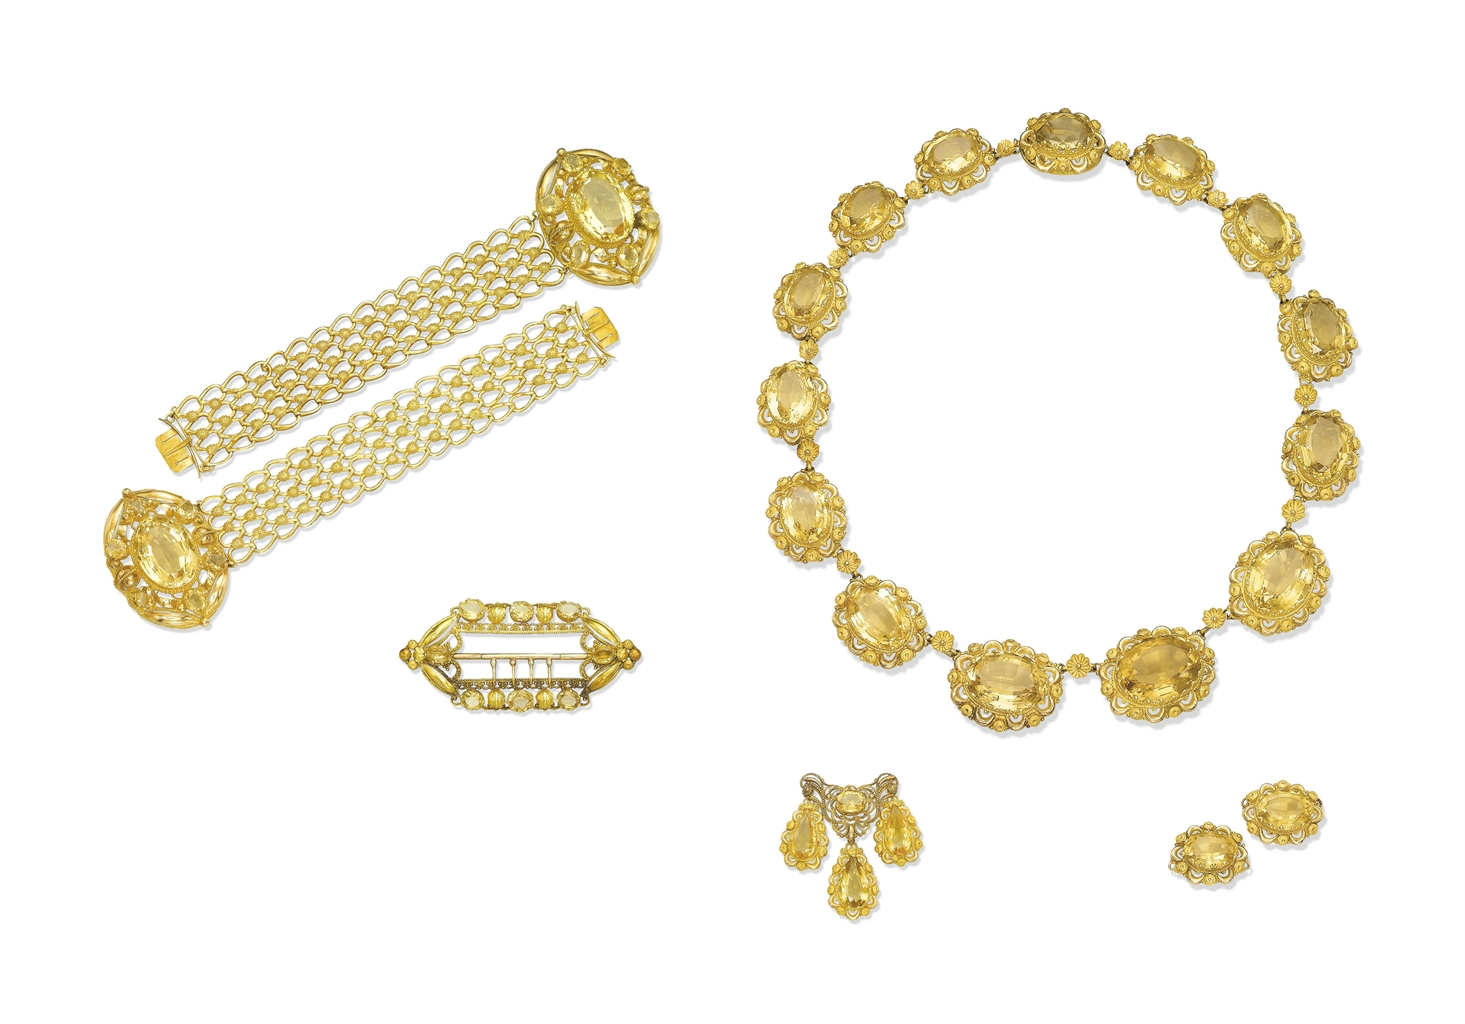 AN ANTIQUE CITRINE AND GOLD PARURE